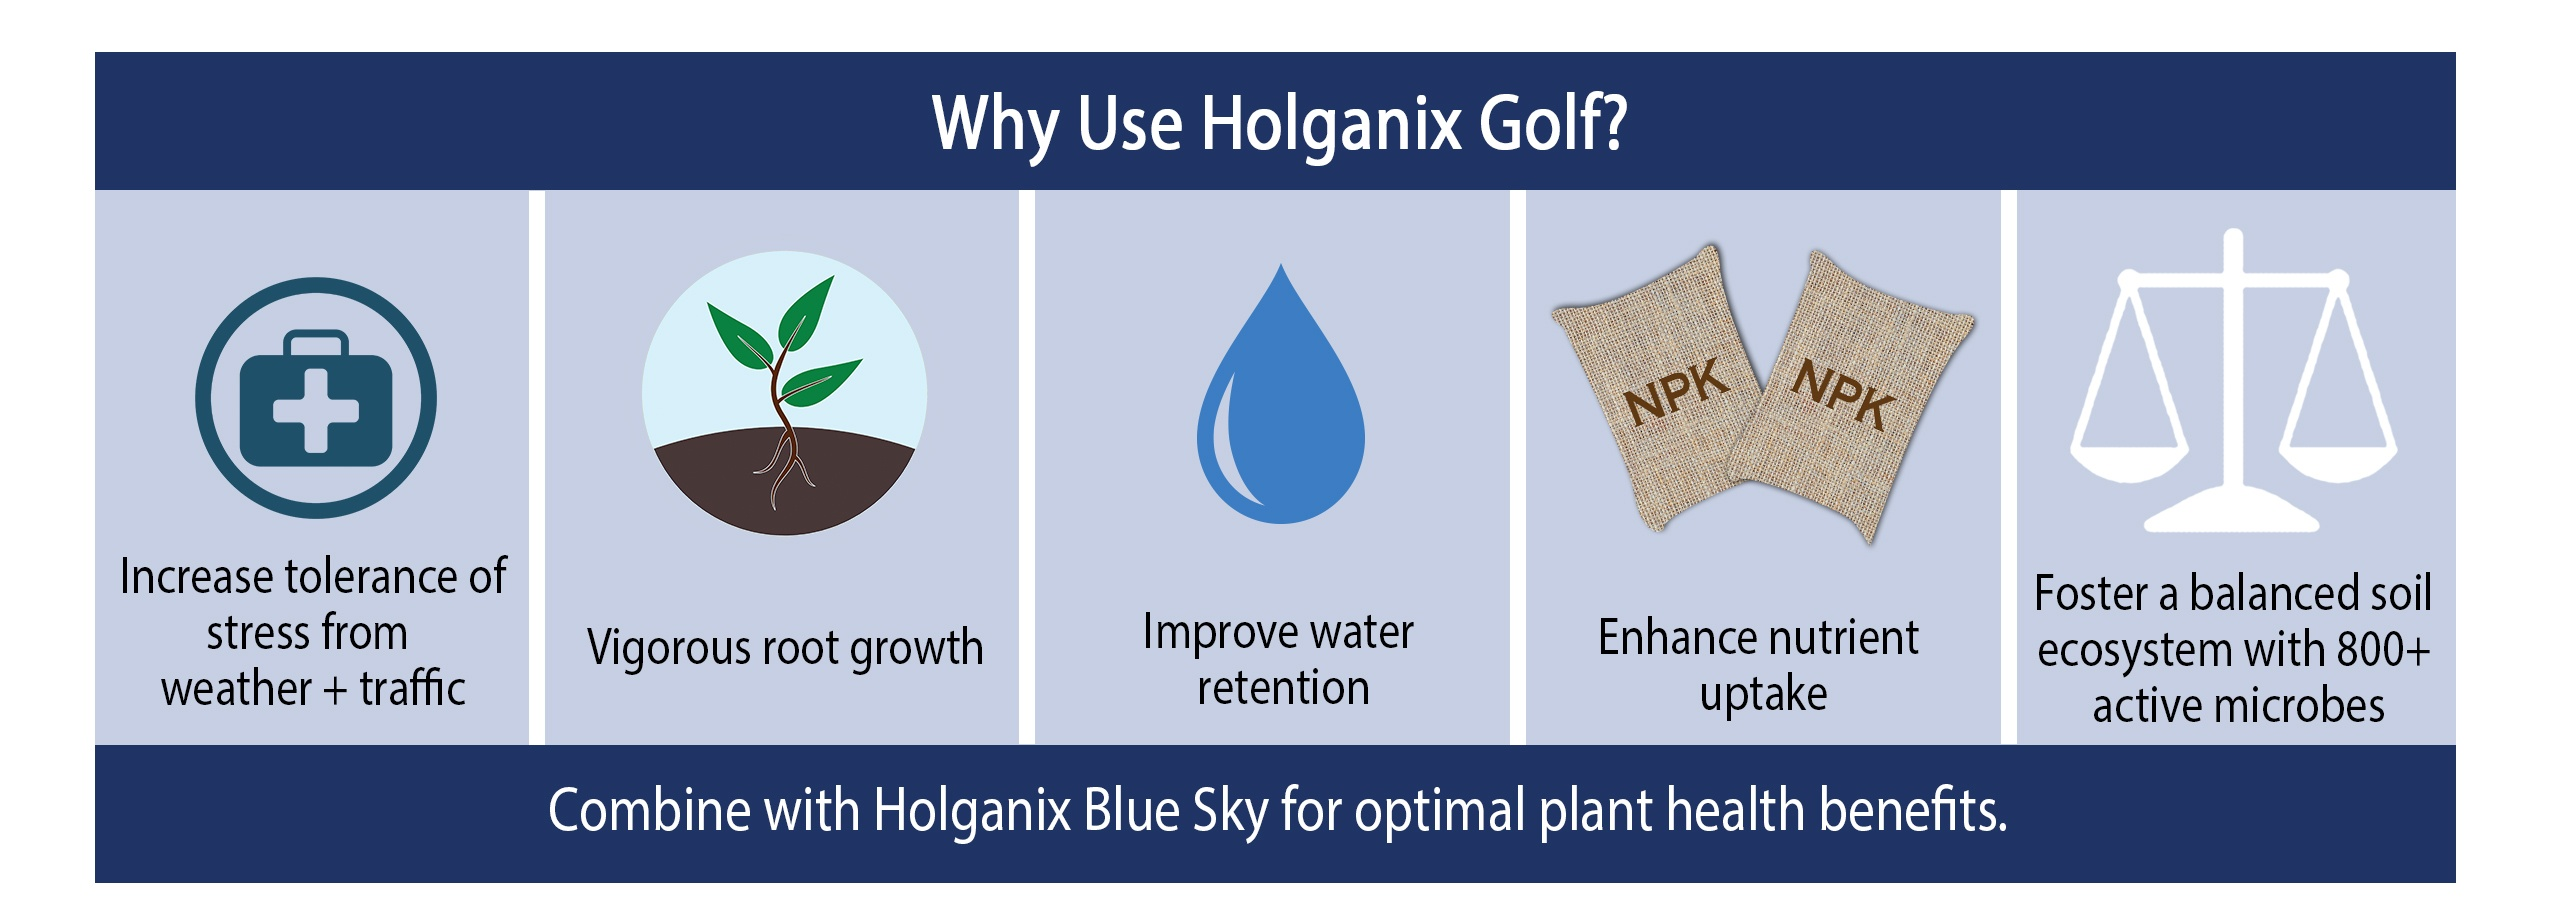 WA Why use Holganix golf.jpg